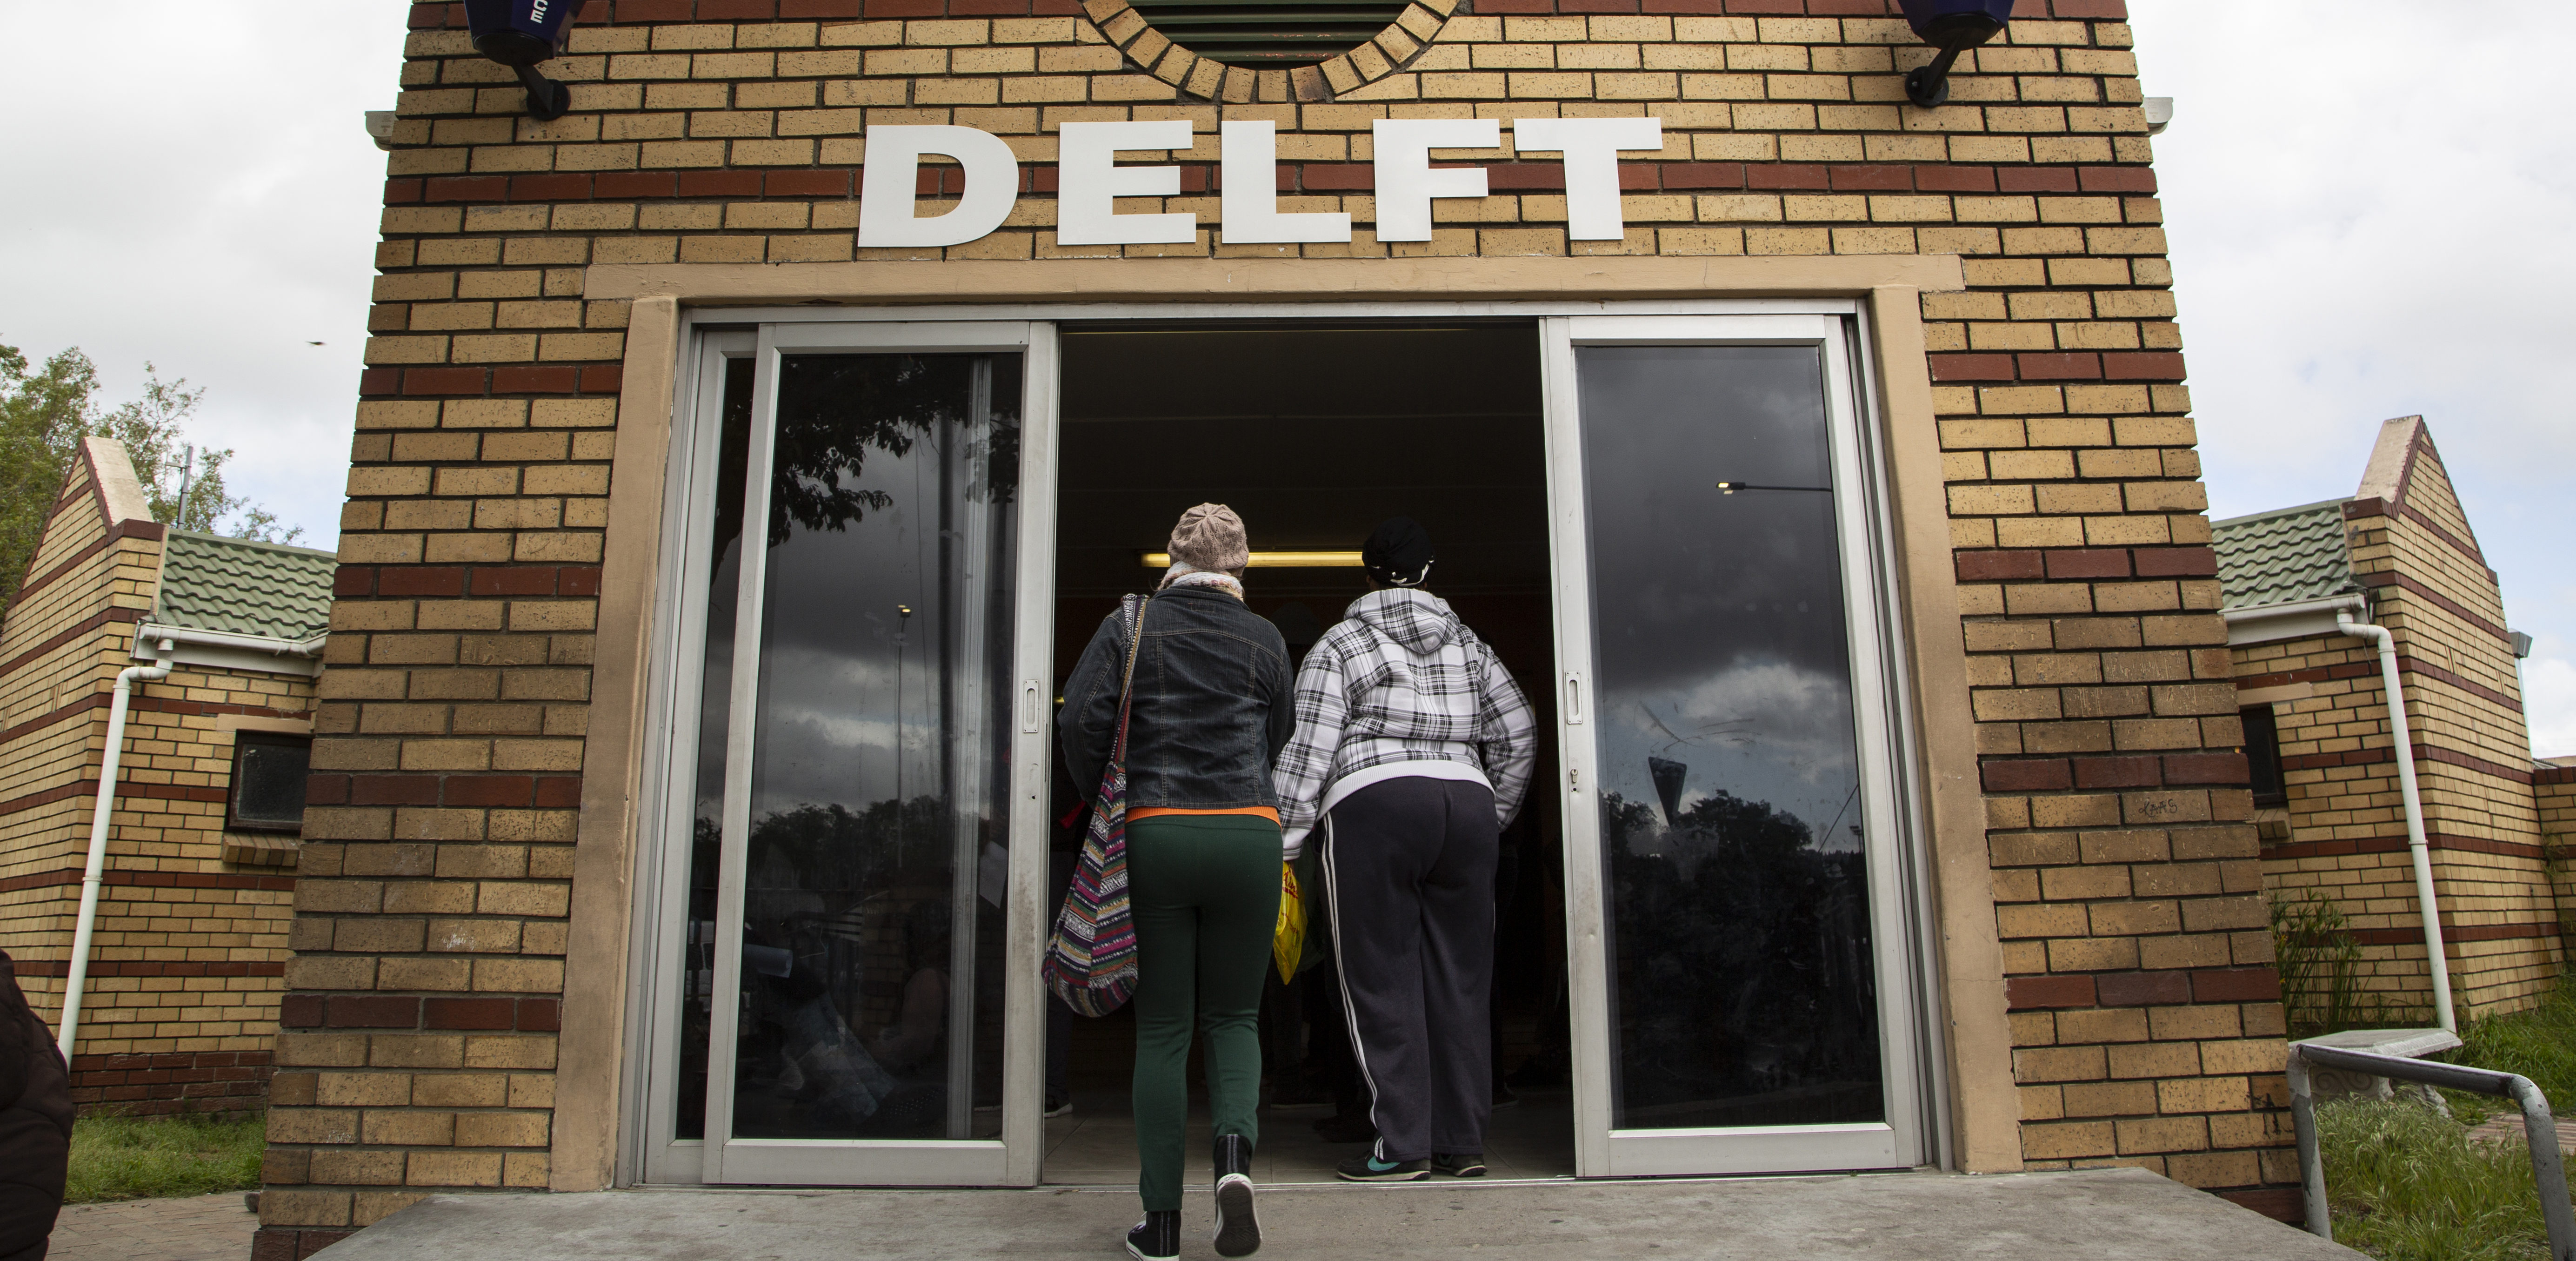 Winde takes his crime plan to Delft but hears of a breakdown between police and community safety structures